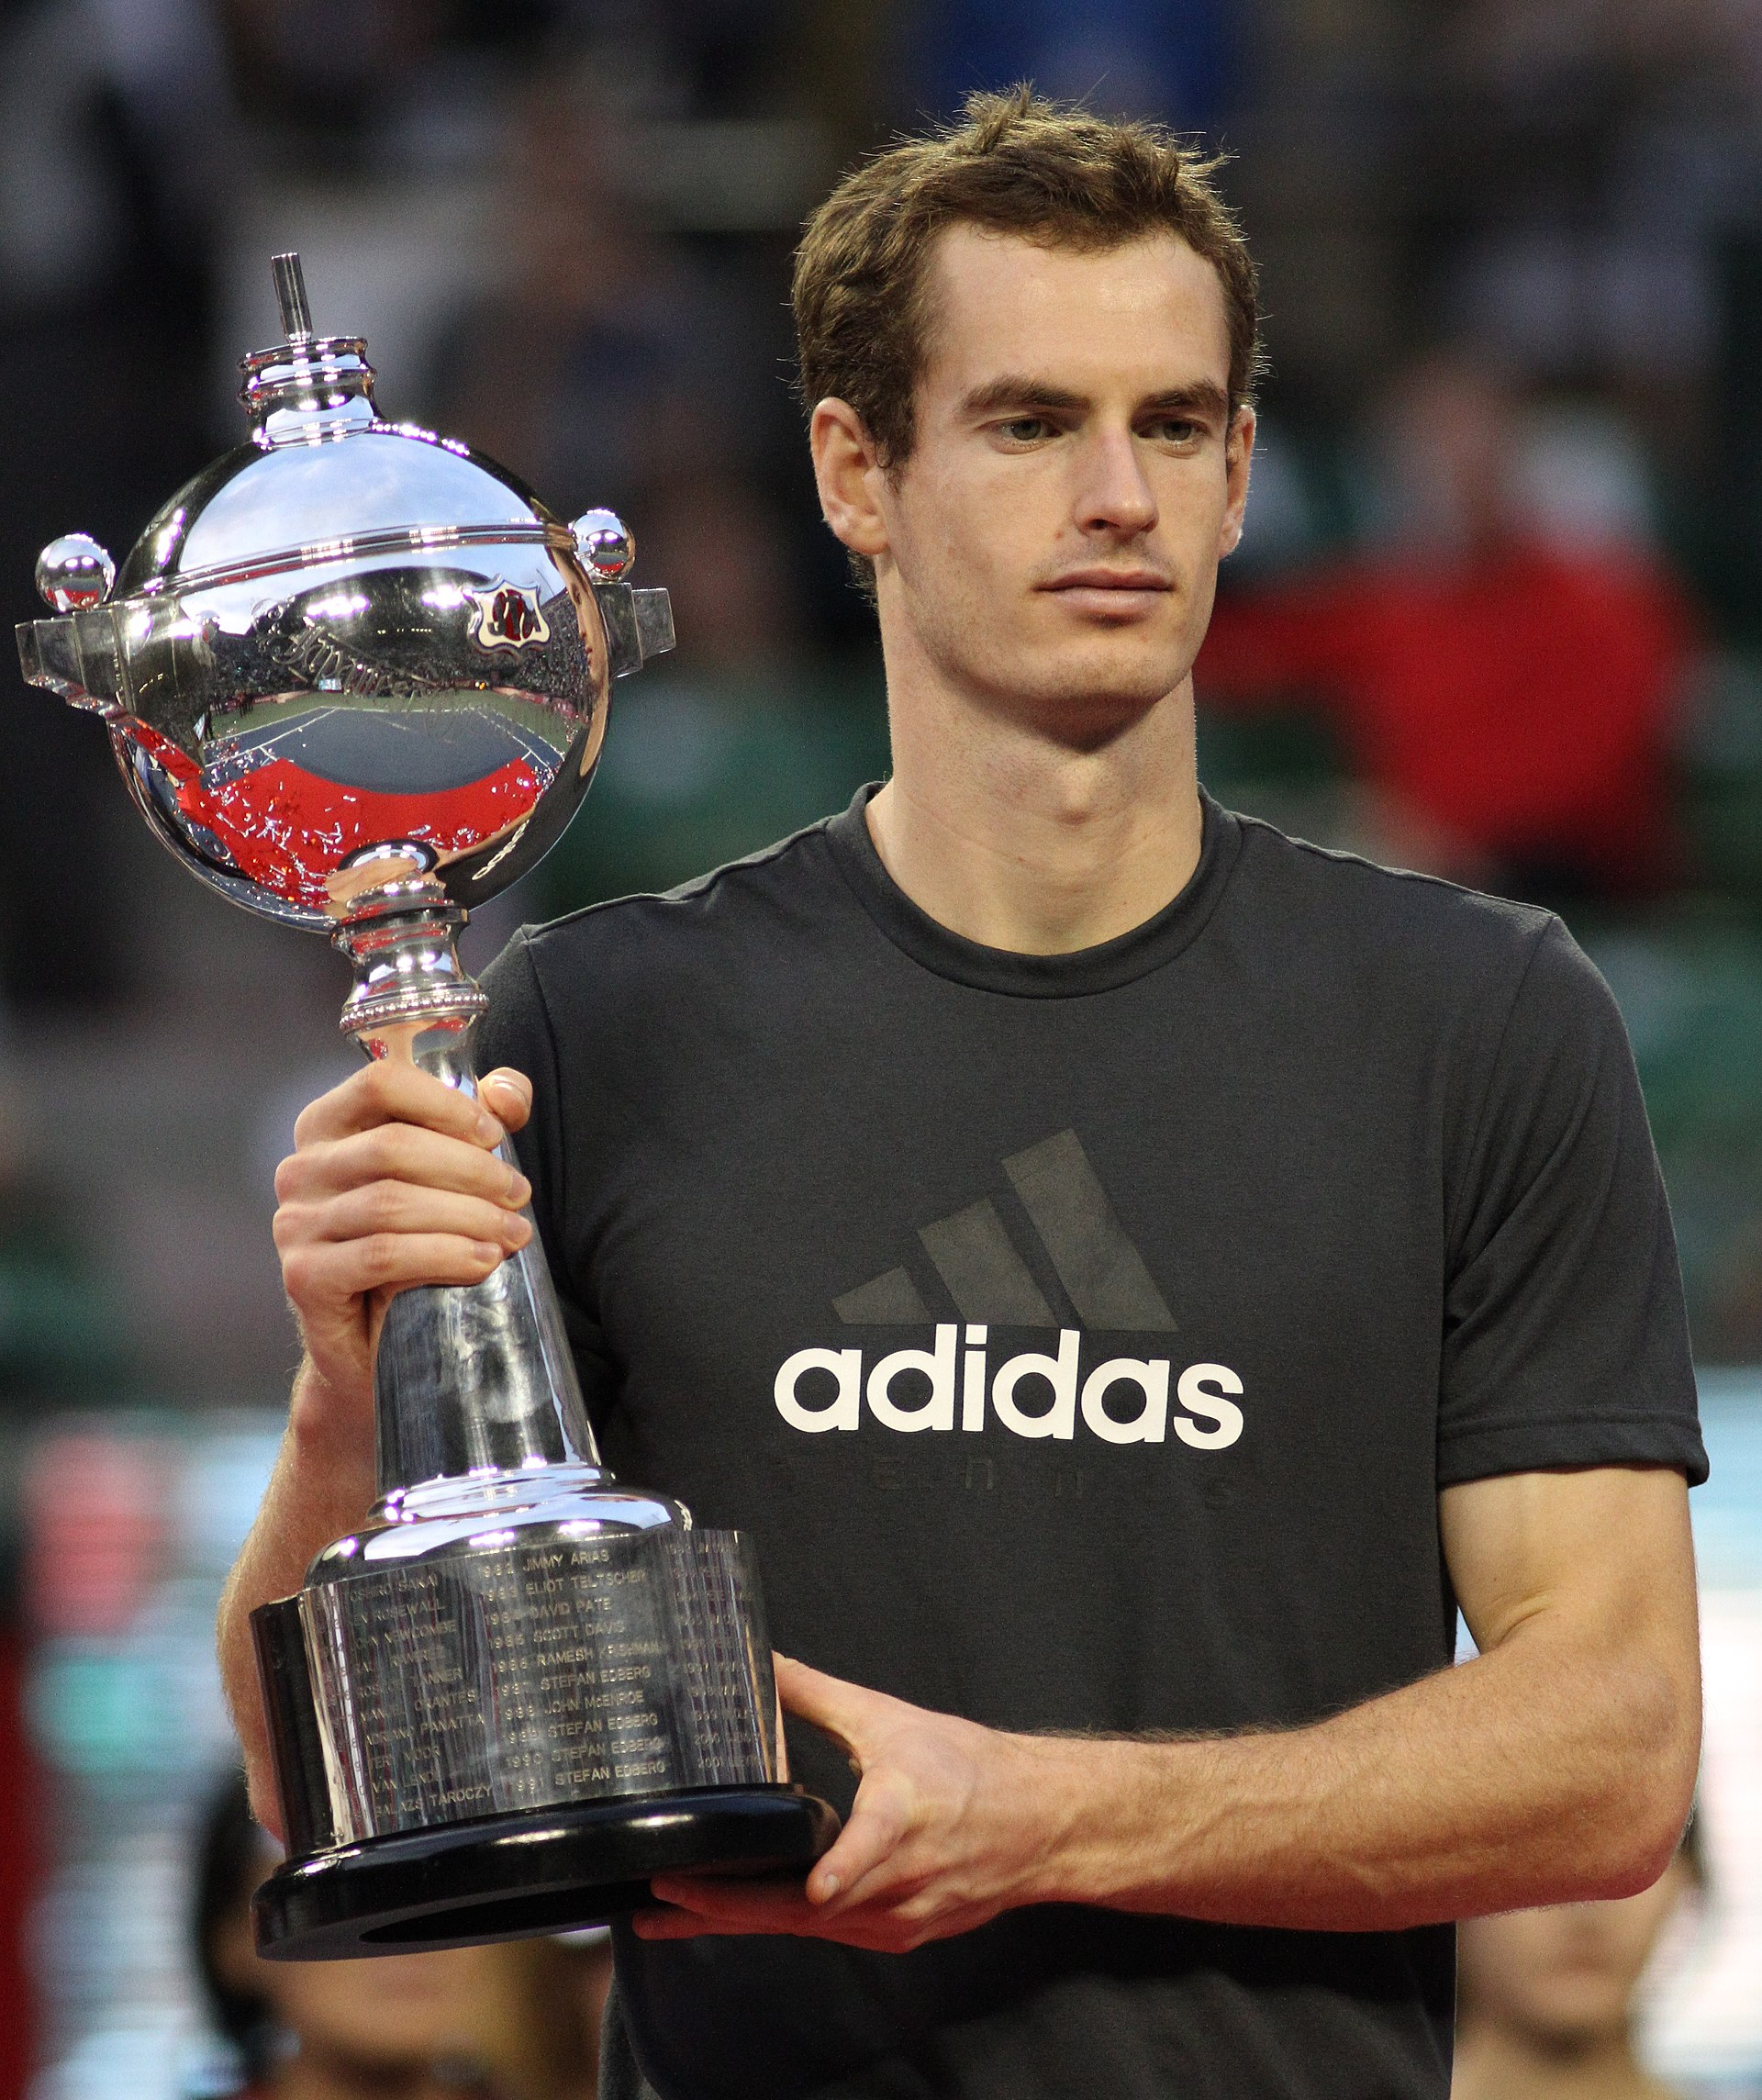 Andy Murray: Simple English Wikipedia, The Free Encyclopedia